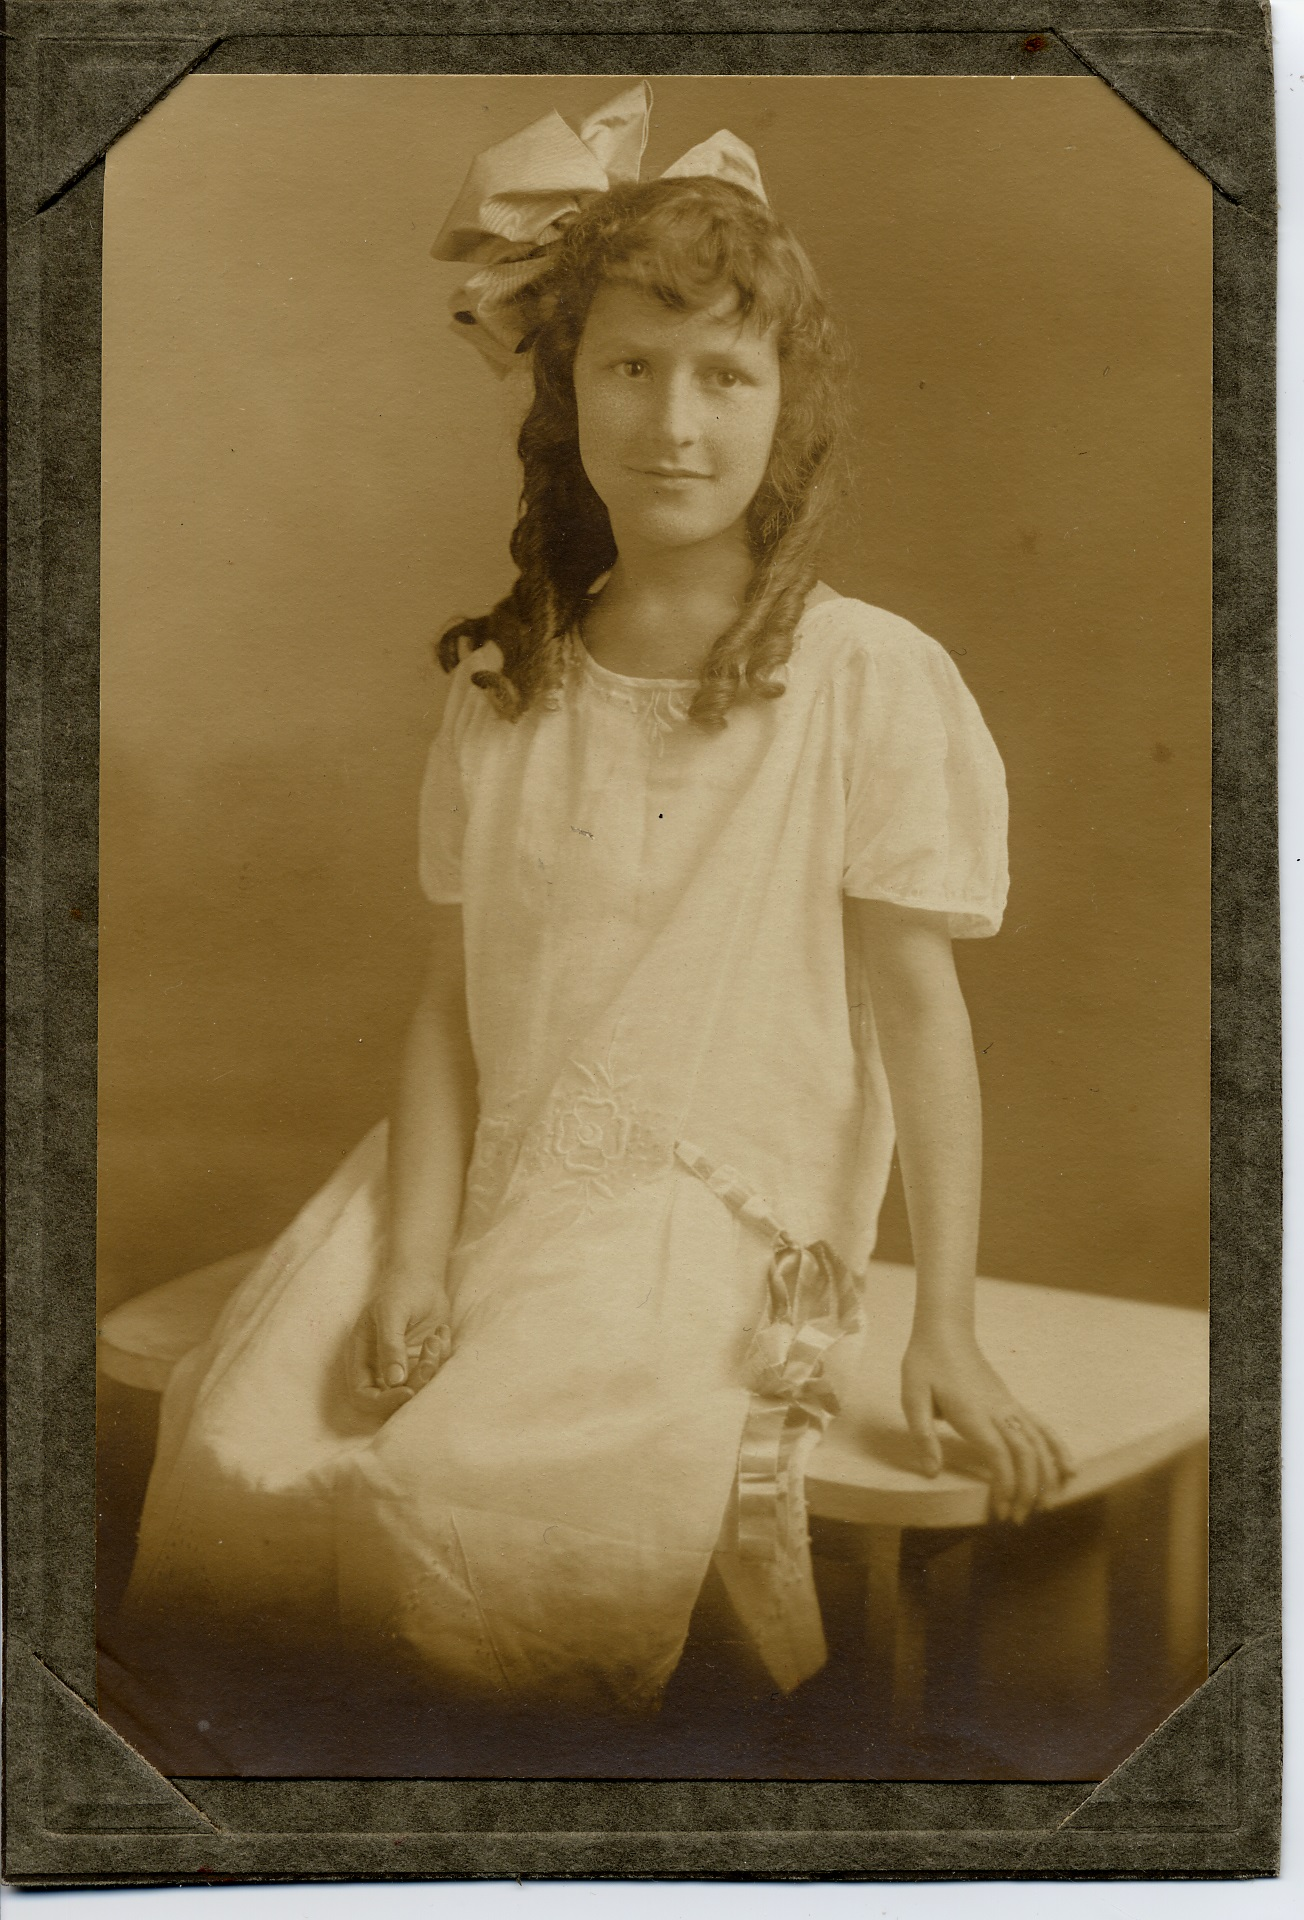 grammar school photograph of Vivian Rostron